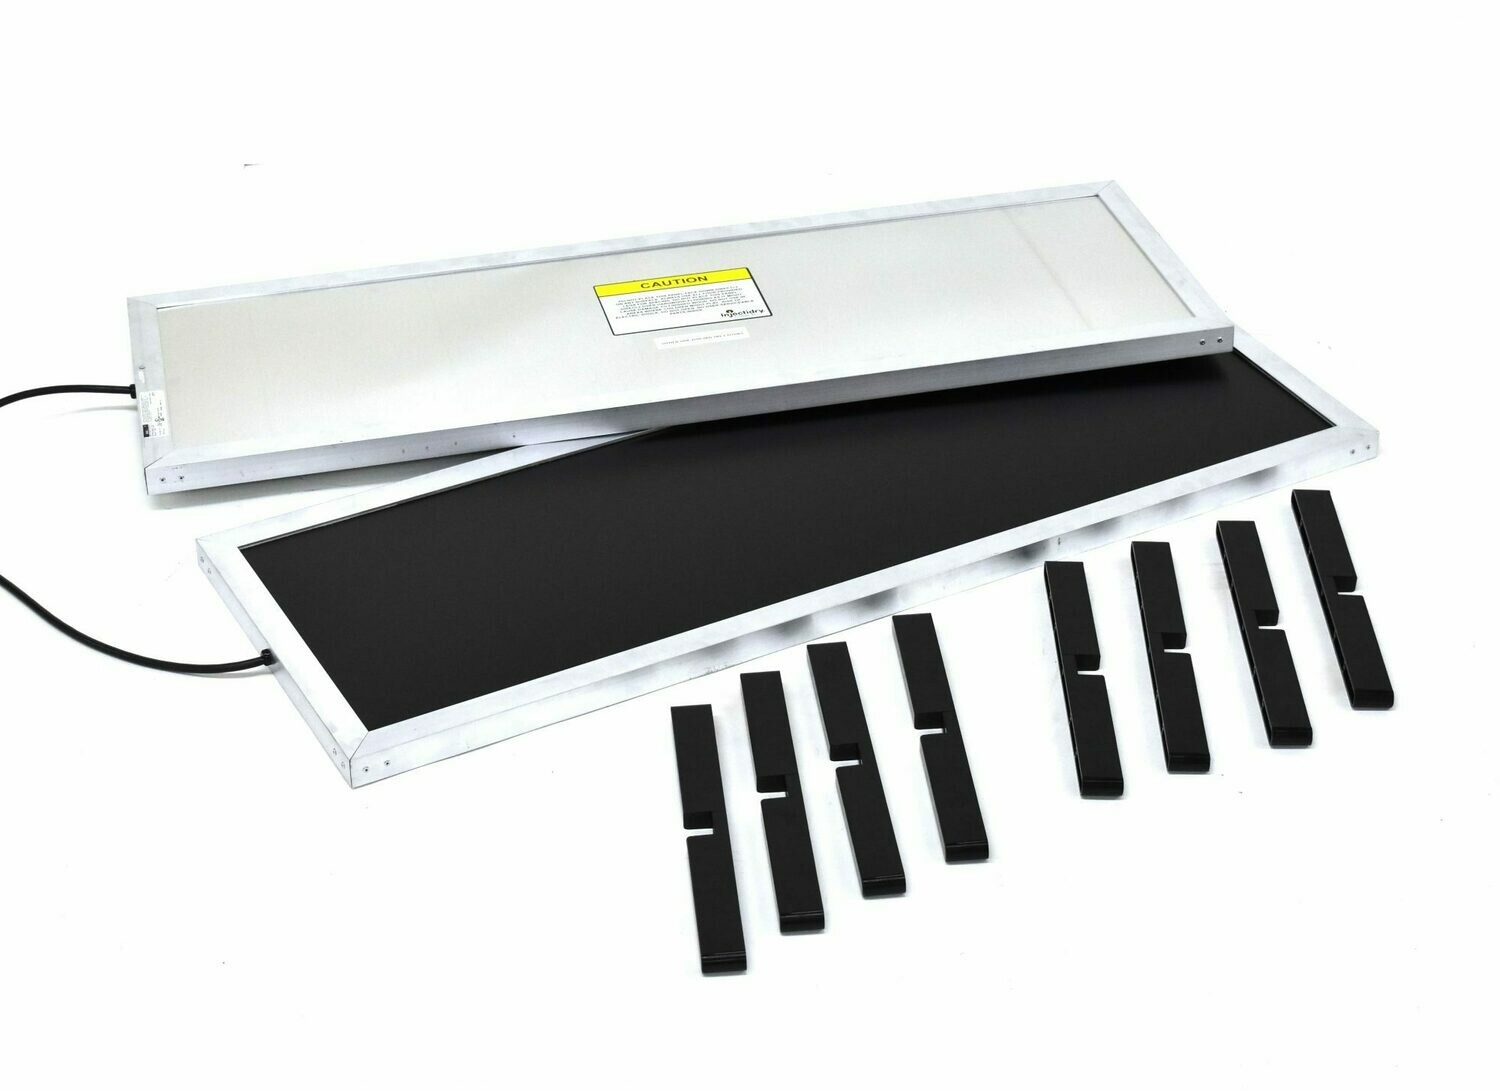 Injectidry Infrared Drying System